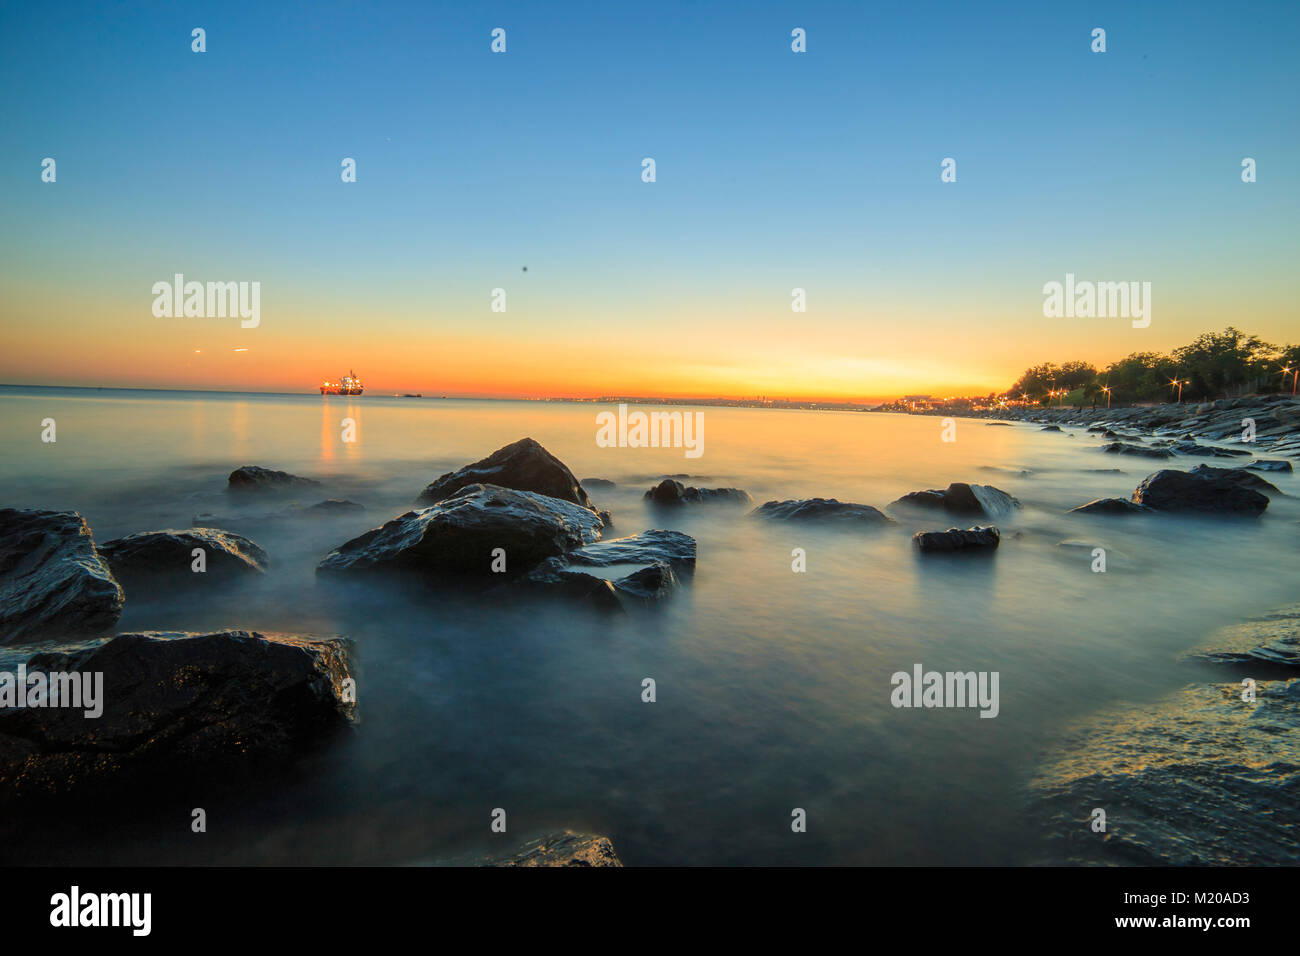 Empty sea and rocks During the sunset with Silky Sea beacuse of the long exposure via ND Filter image for design - Stock Image